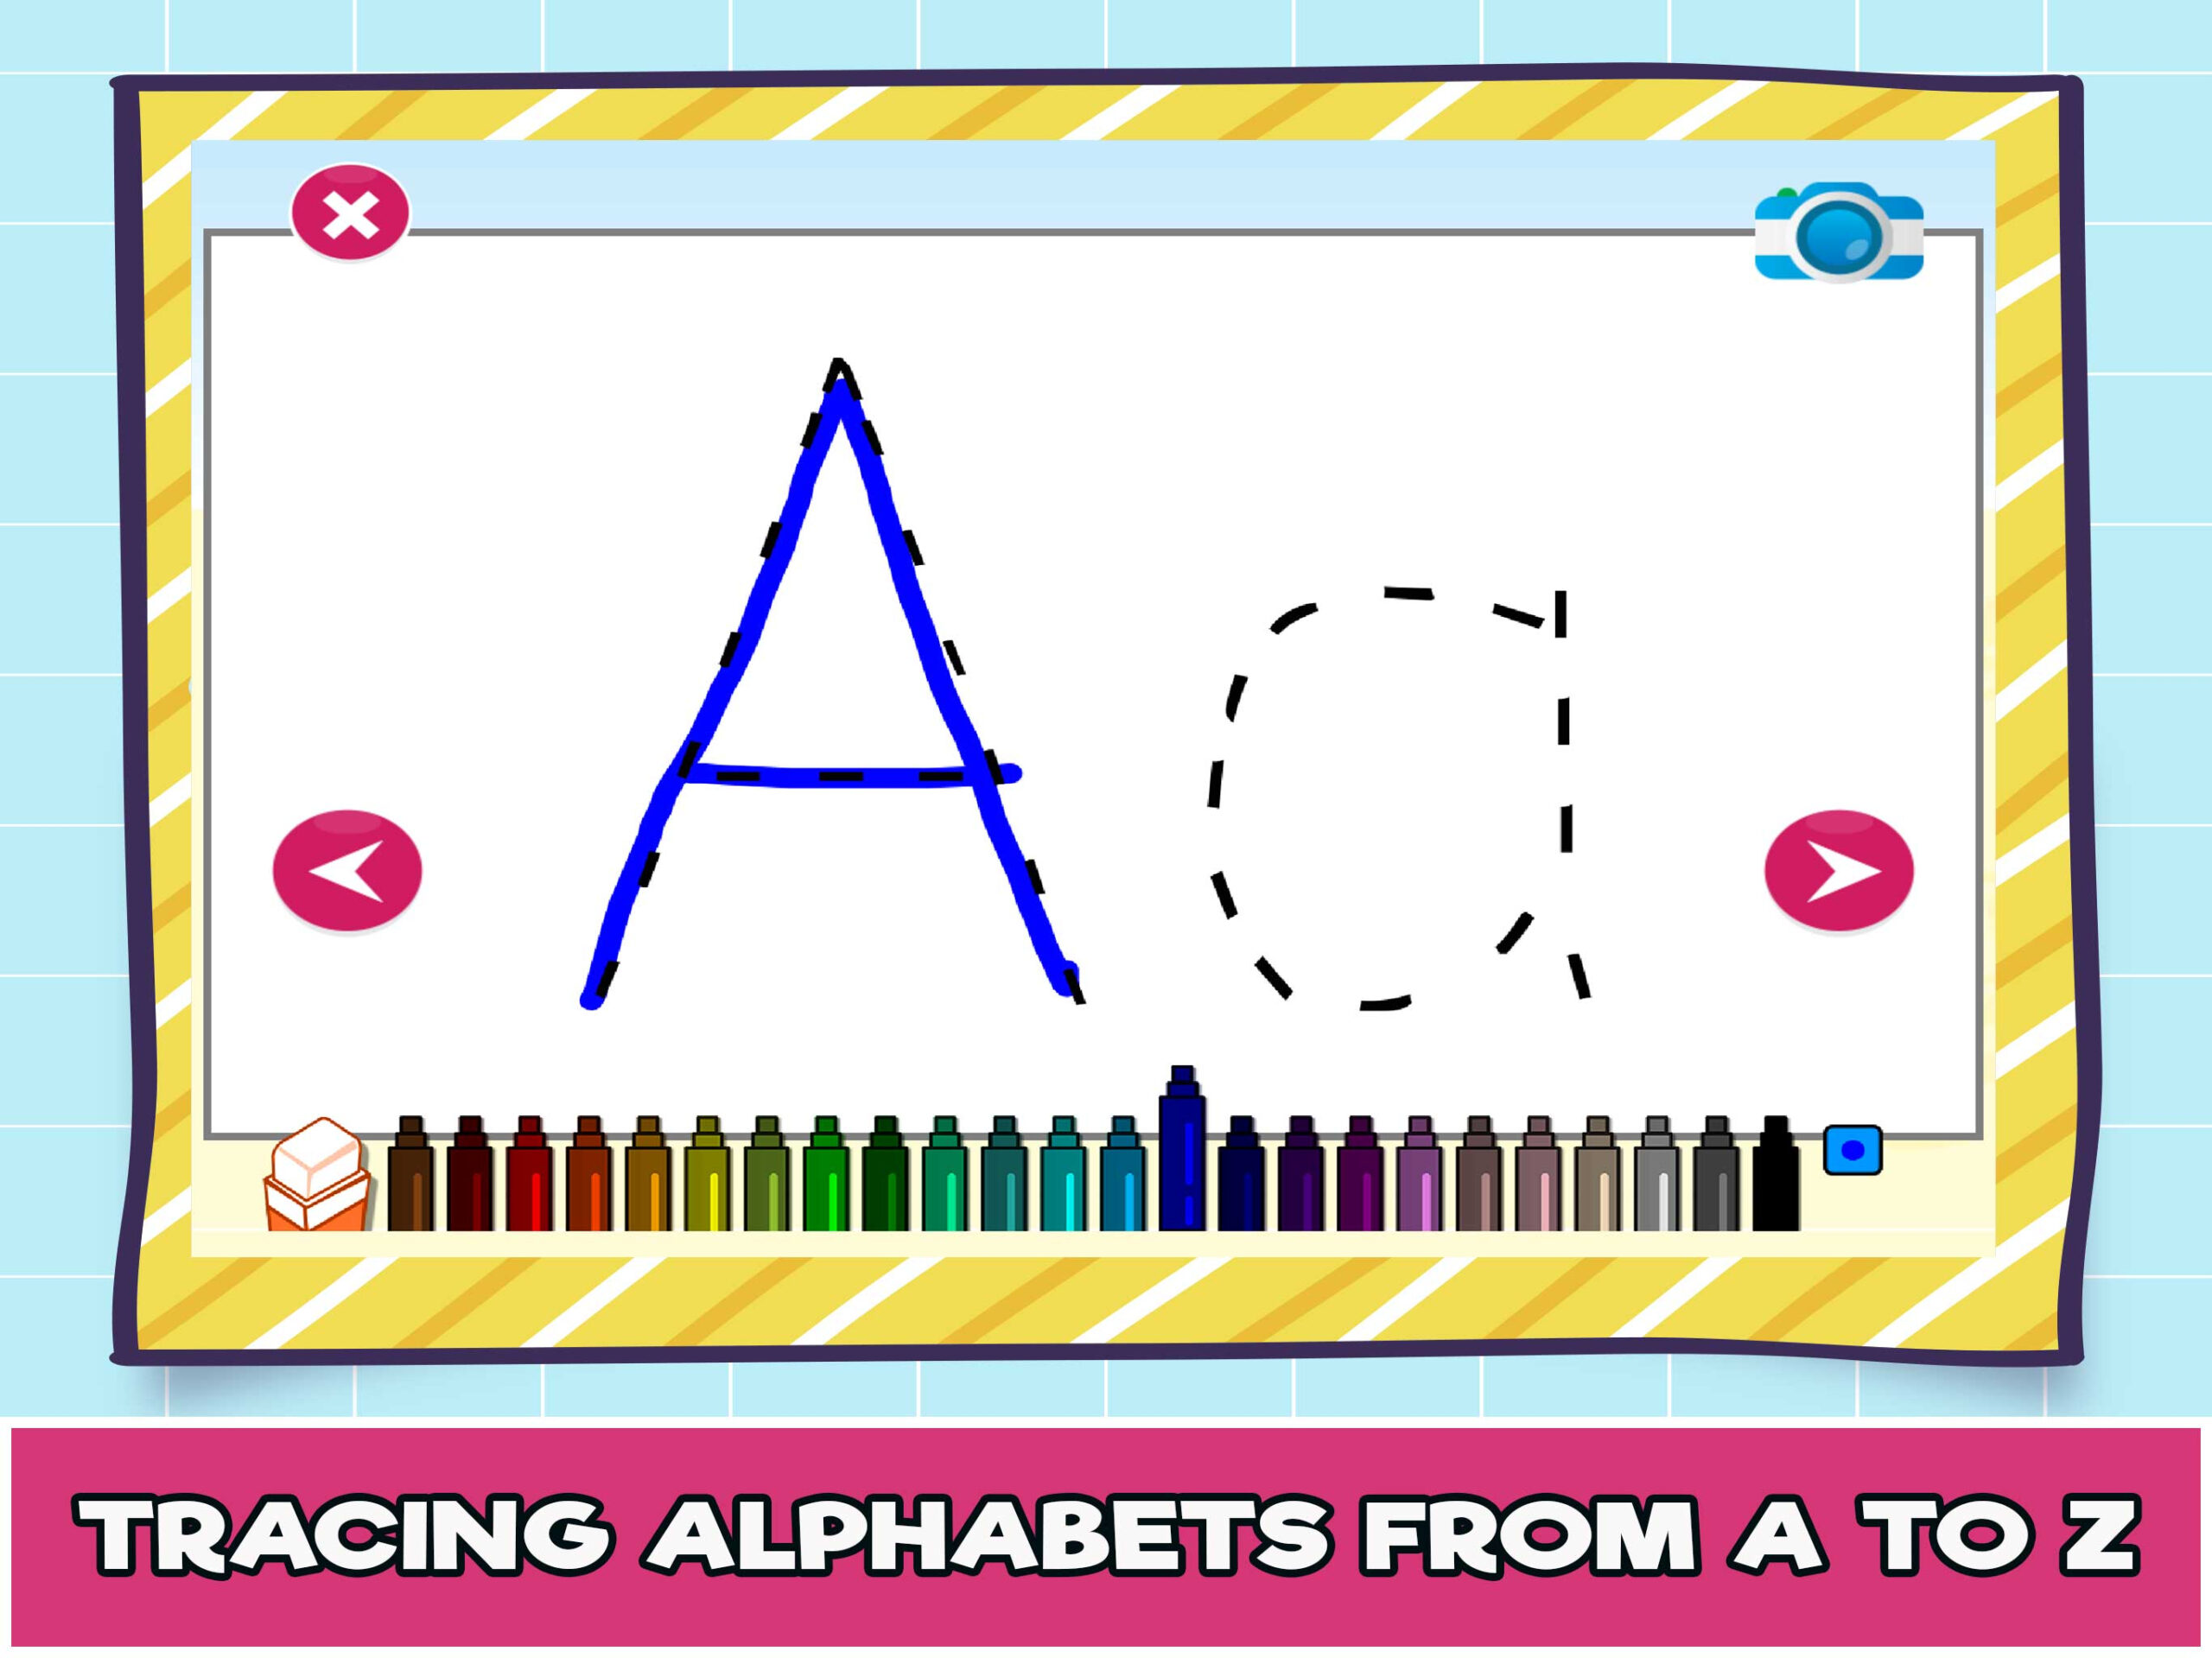 Free Online Alphabet Tracing Game For Kids - The Learning Apps regarding Letter Tracing Html5